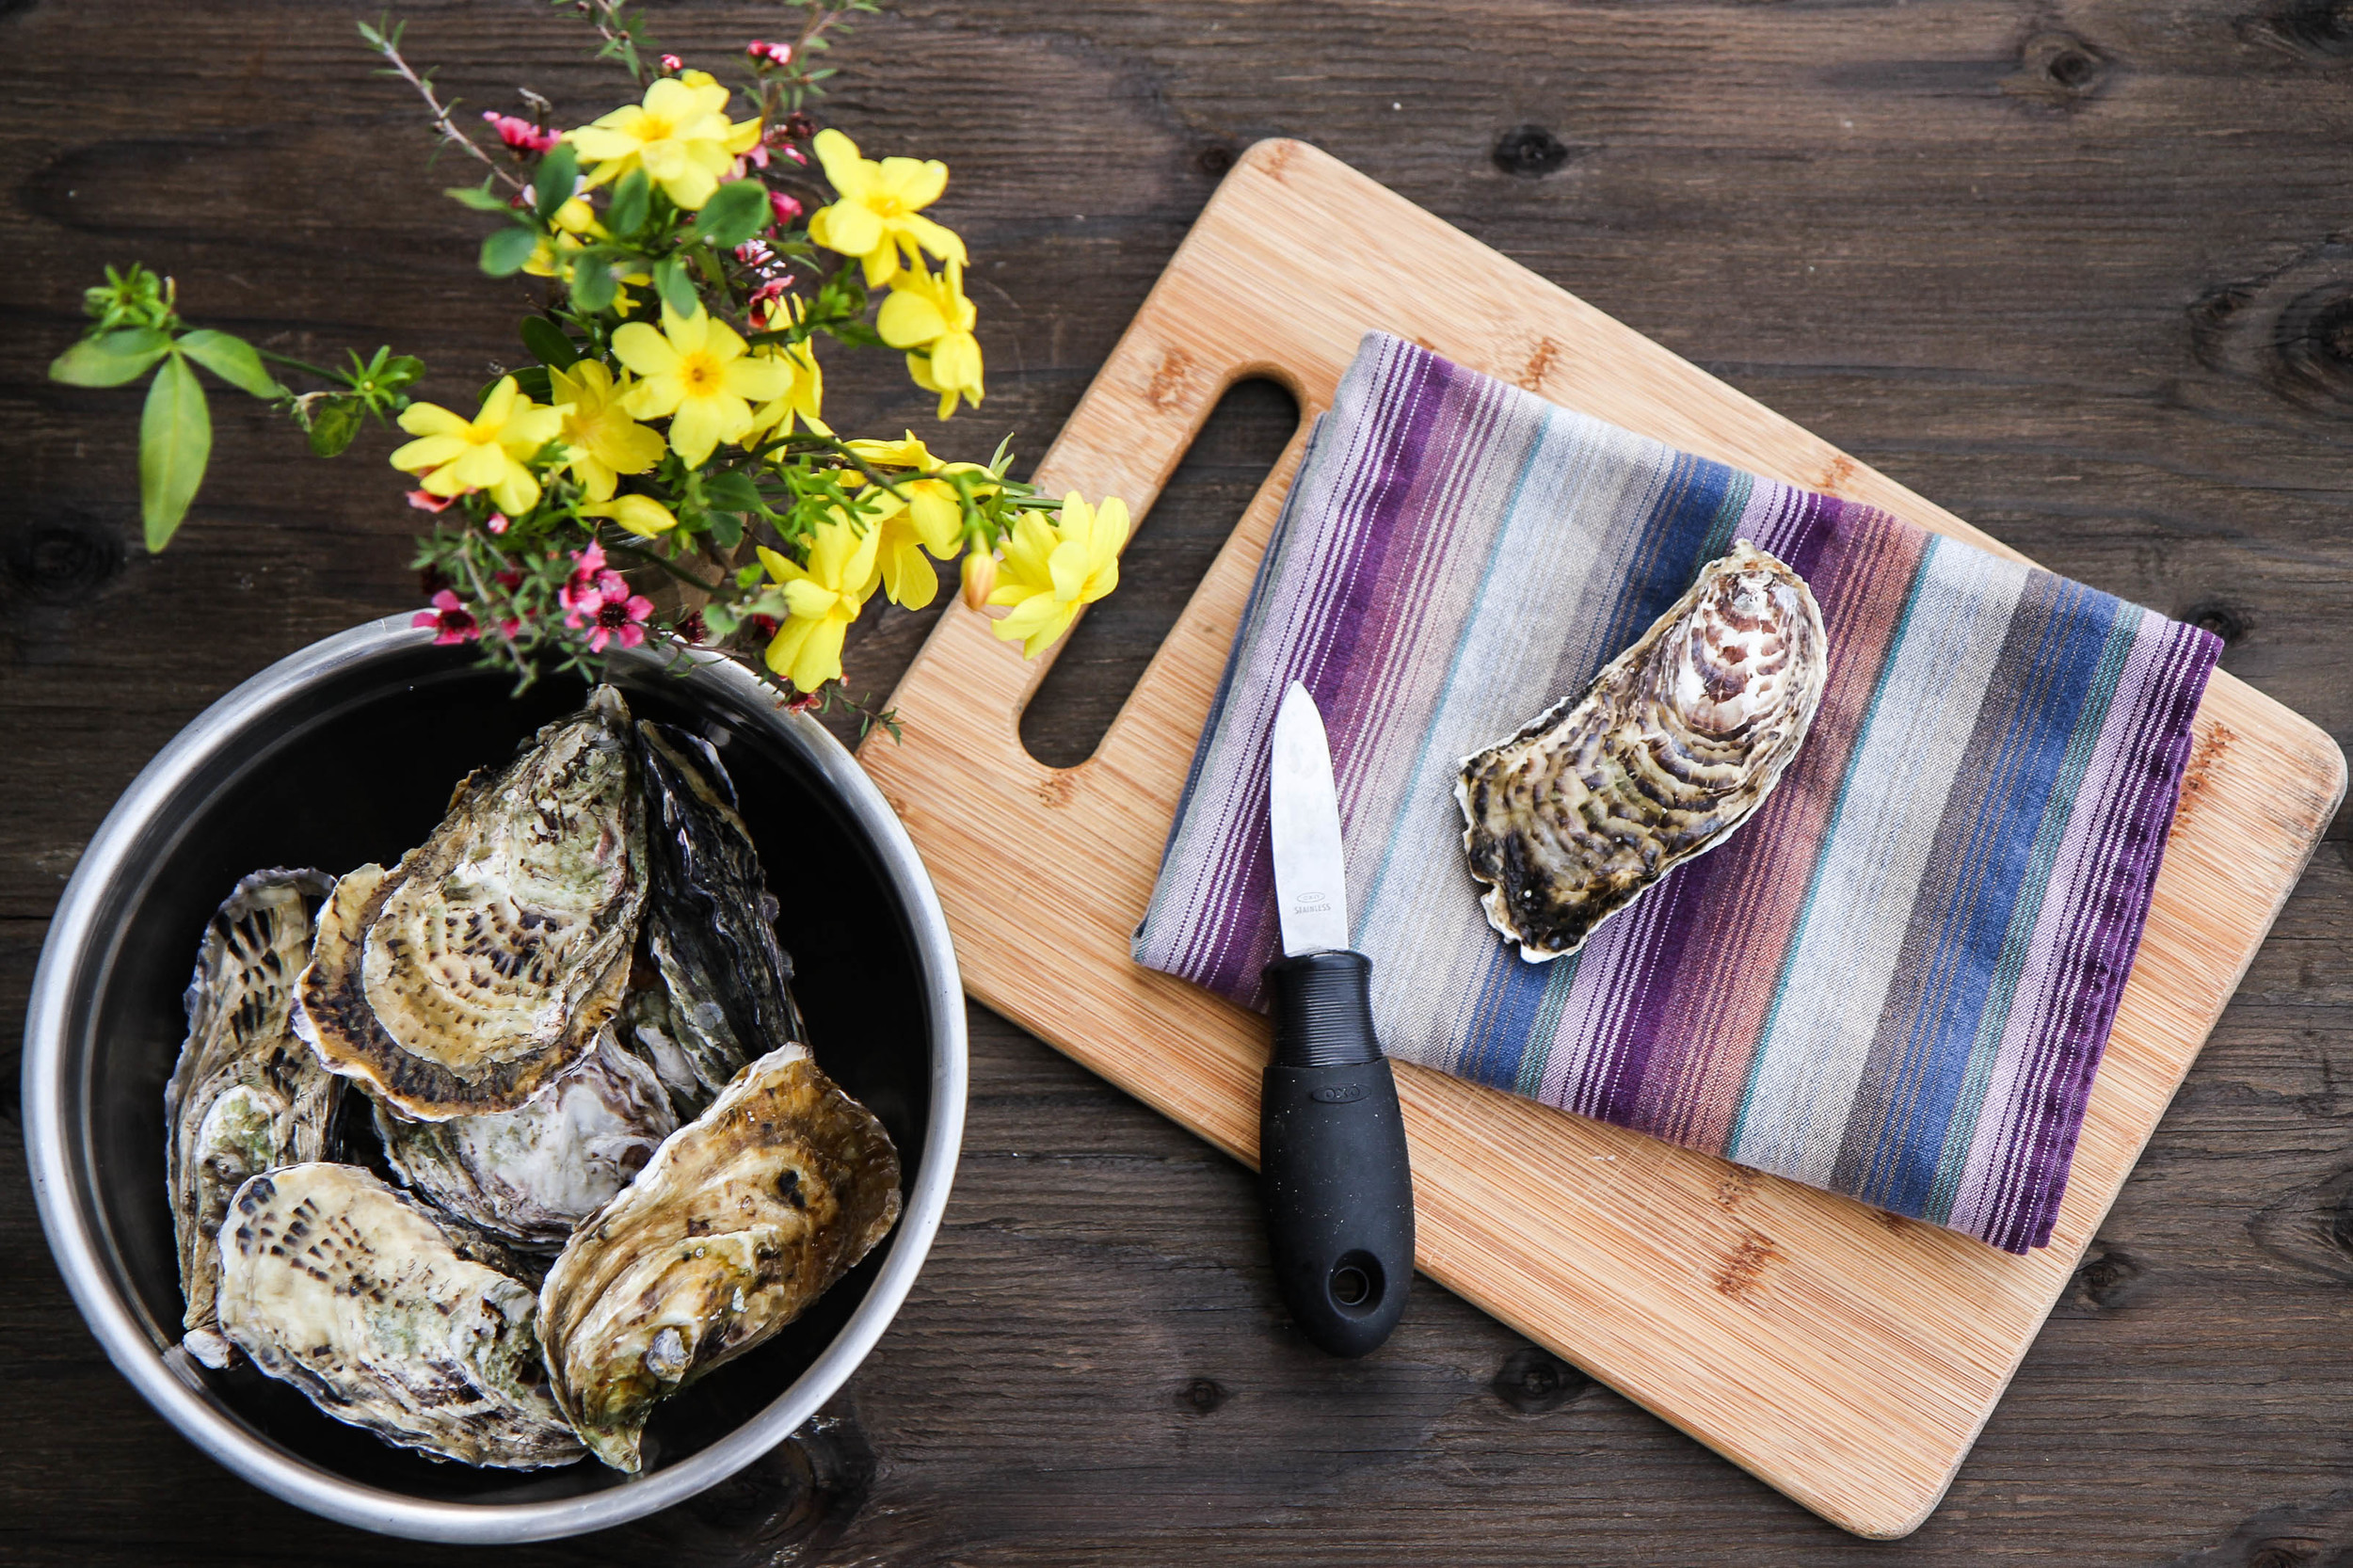 Use a kitchen towel for easier gripping when shucking oysters.